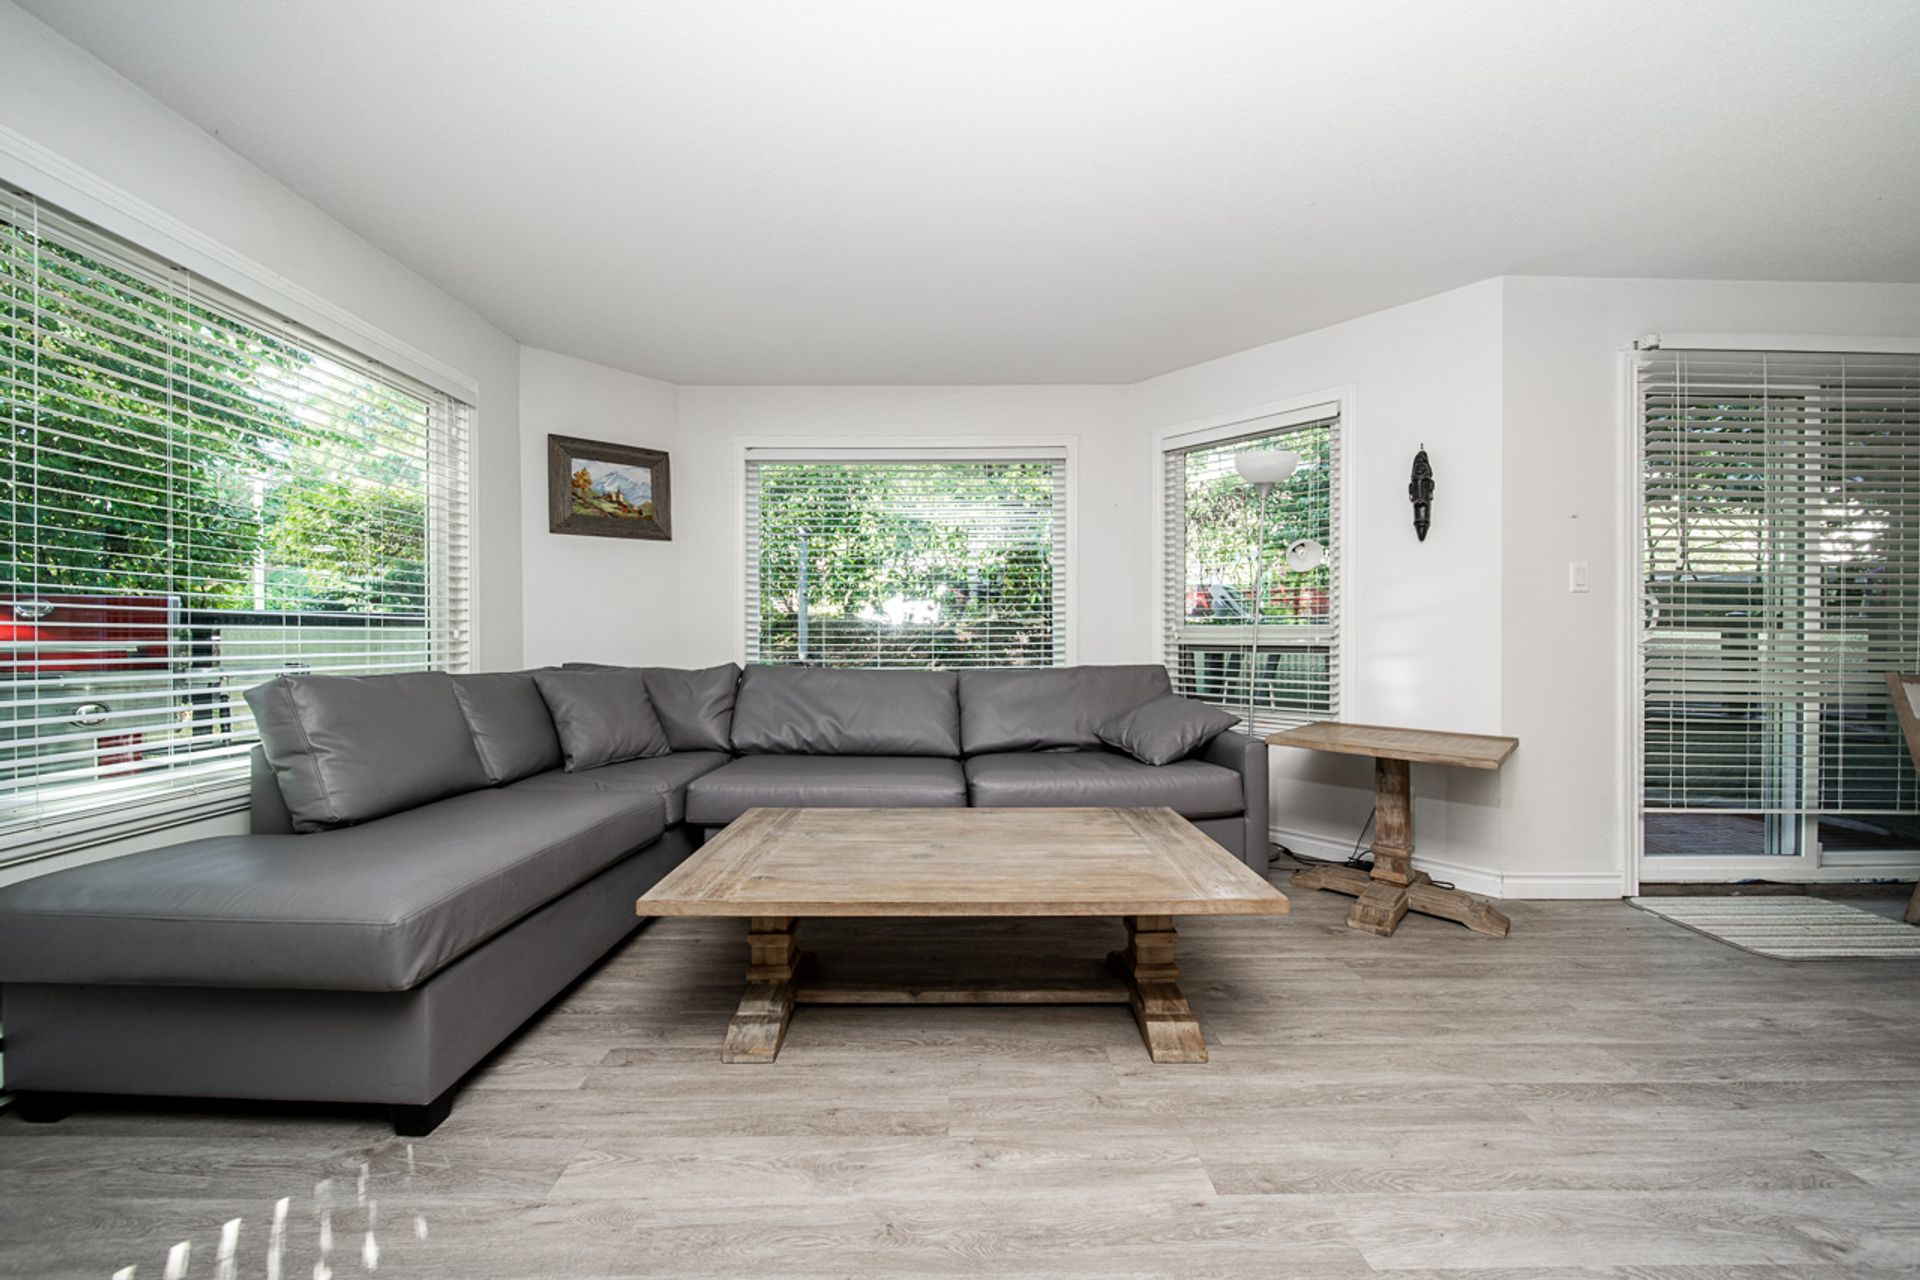 unit-101-175-west-4th-street-north-vancouver-11 at 101 - 175 W 4th Street, Lower Lonsdale, North Vancouver